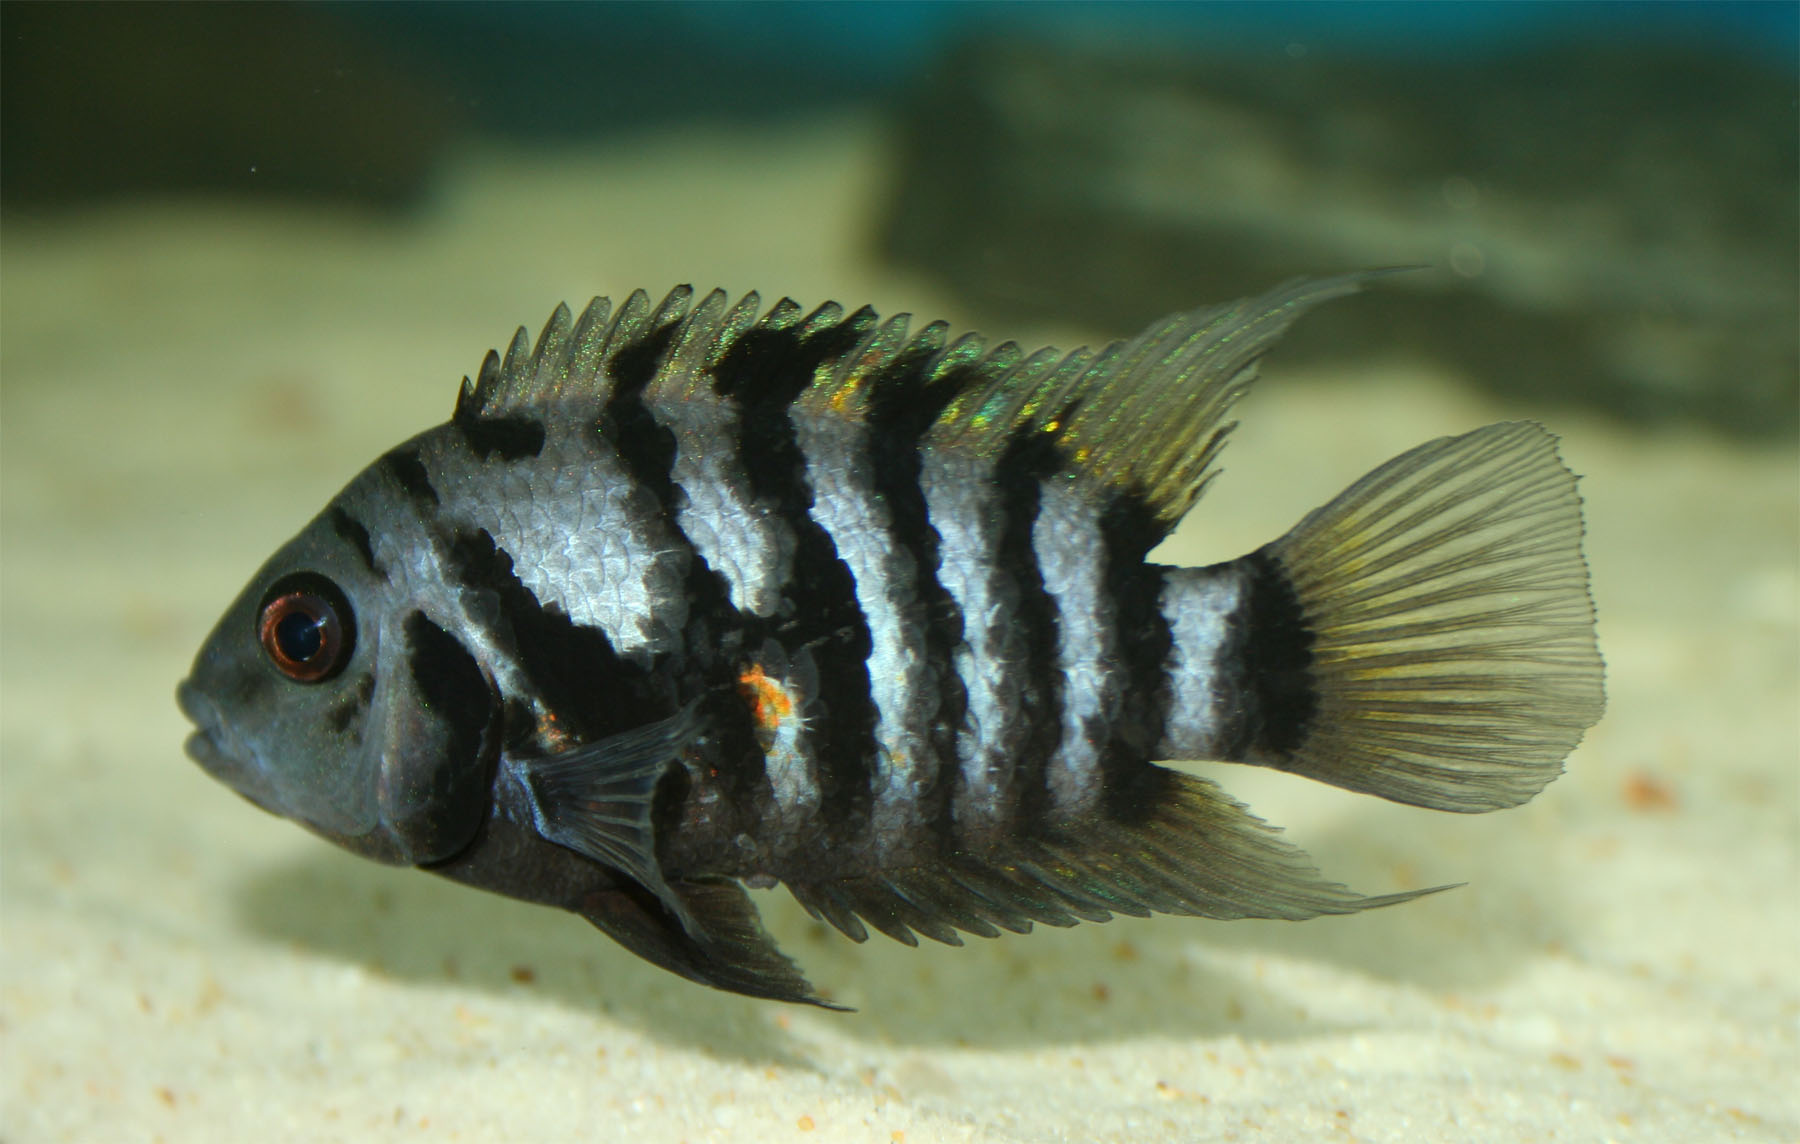 Convict cichlid (Amatitlania nigrofasciatus) | source wikimedia| user:Hippocampus | CC BY 2.5